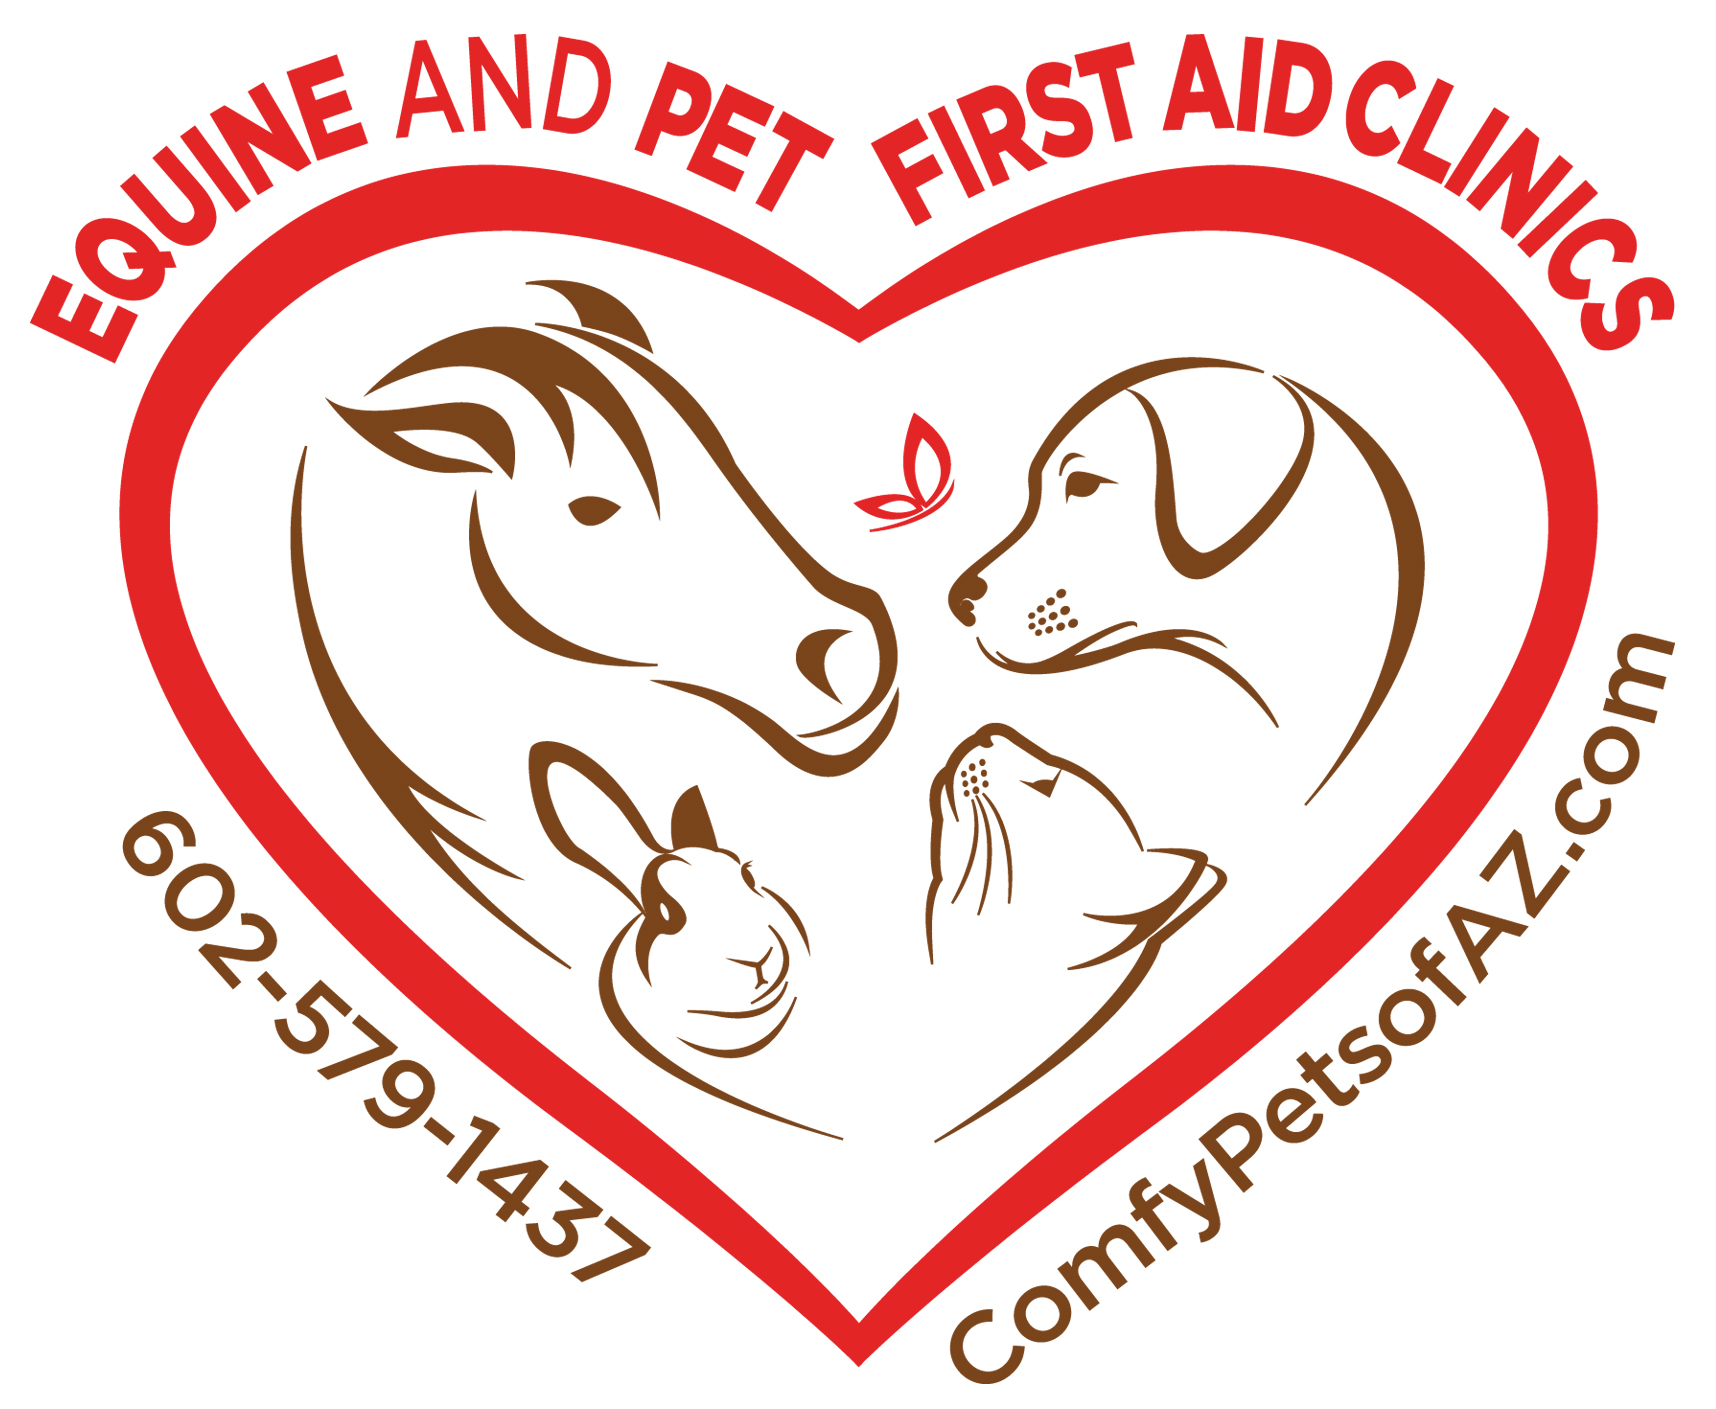 Equine-Pet ComfyPets-logo red-brown